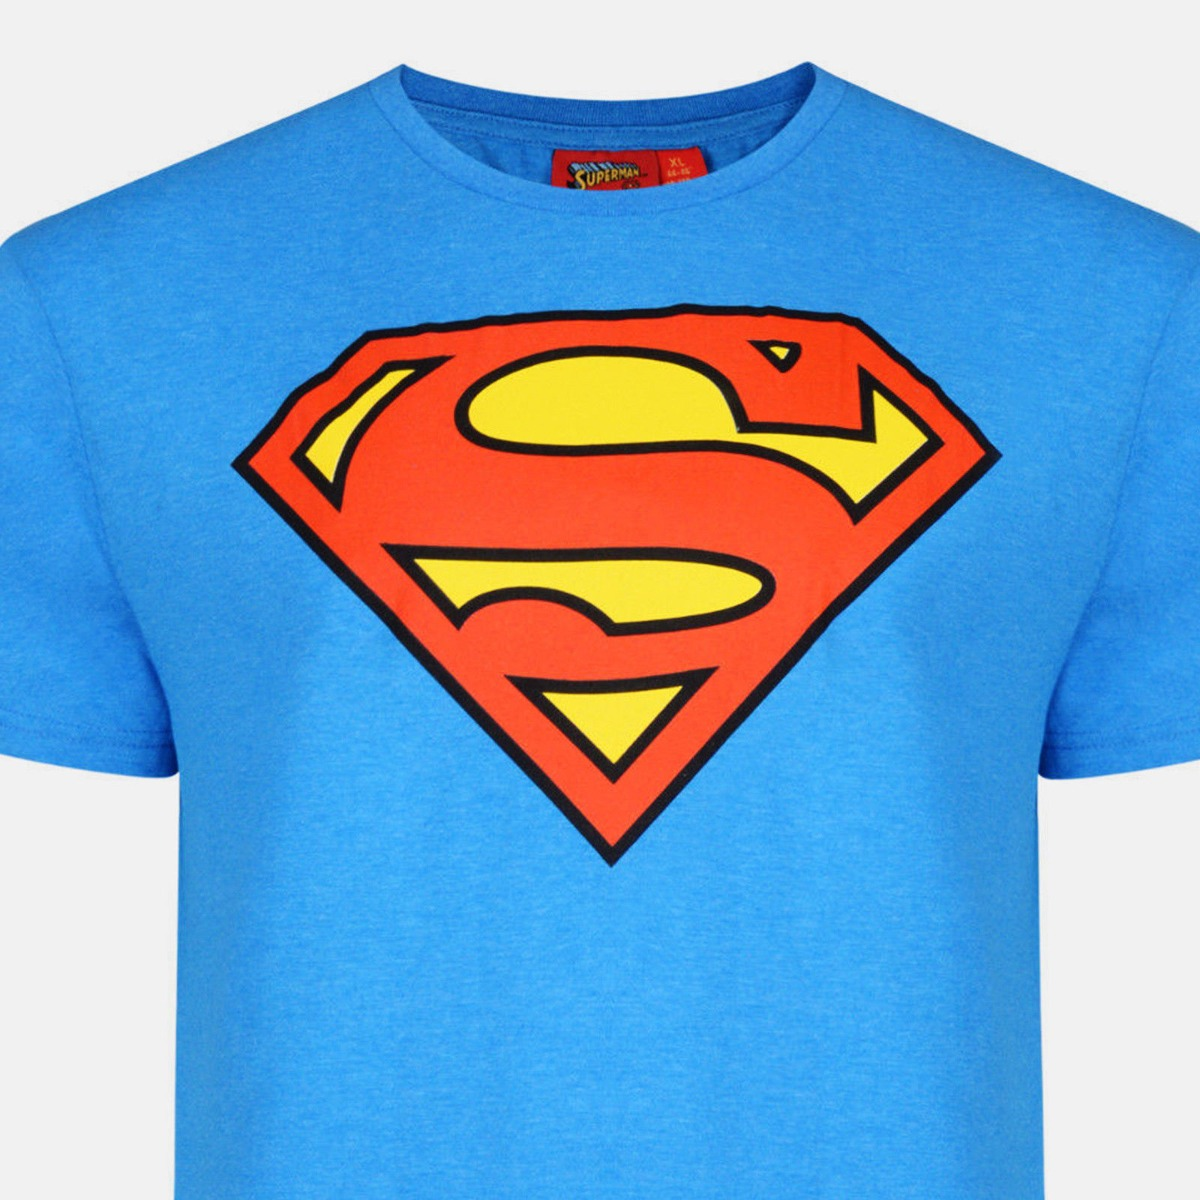 Official-Mens-Superman-T-Shirt-DC-Comic-Tee-Top-Superhero-Logo-Slim-Fit-XS-2XL miniatura 10